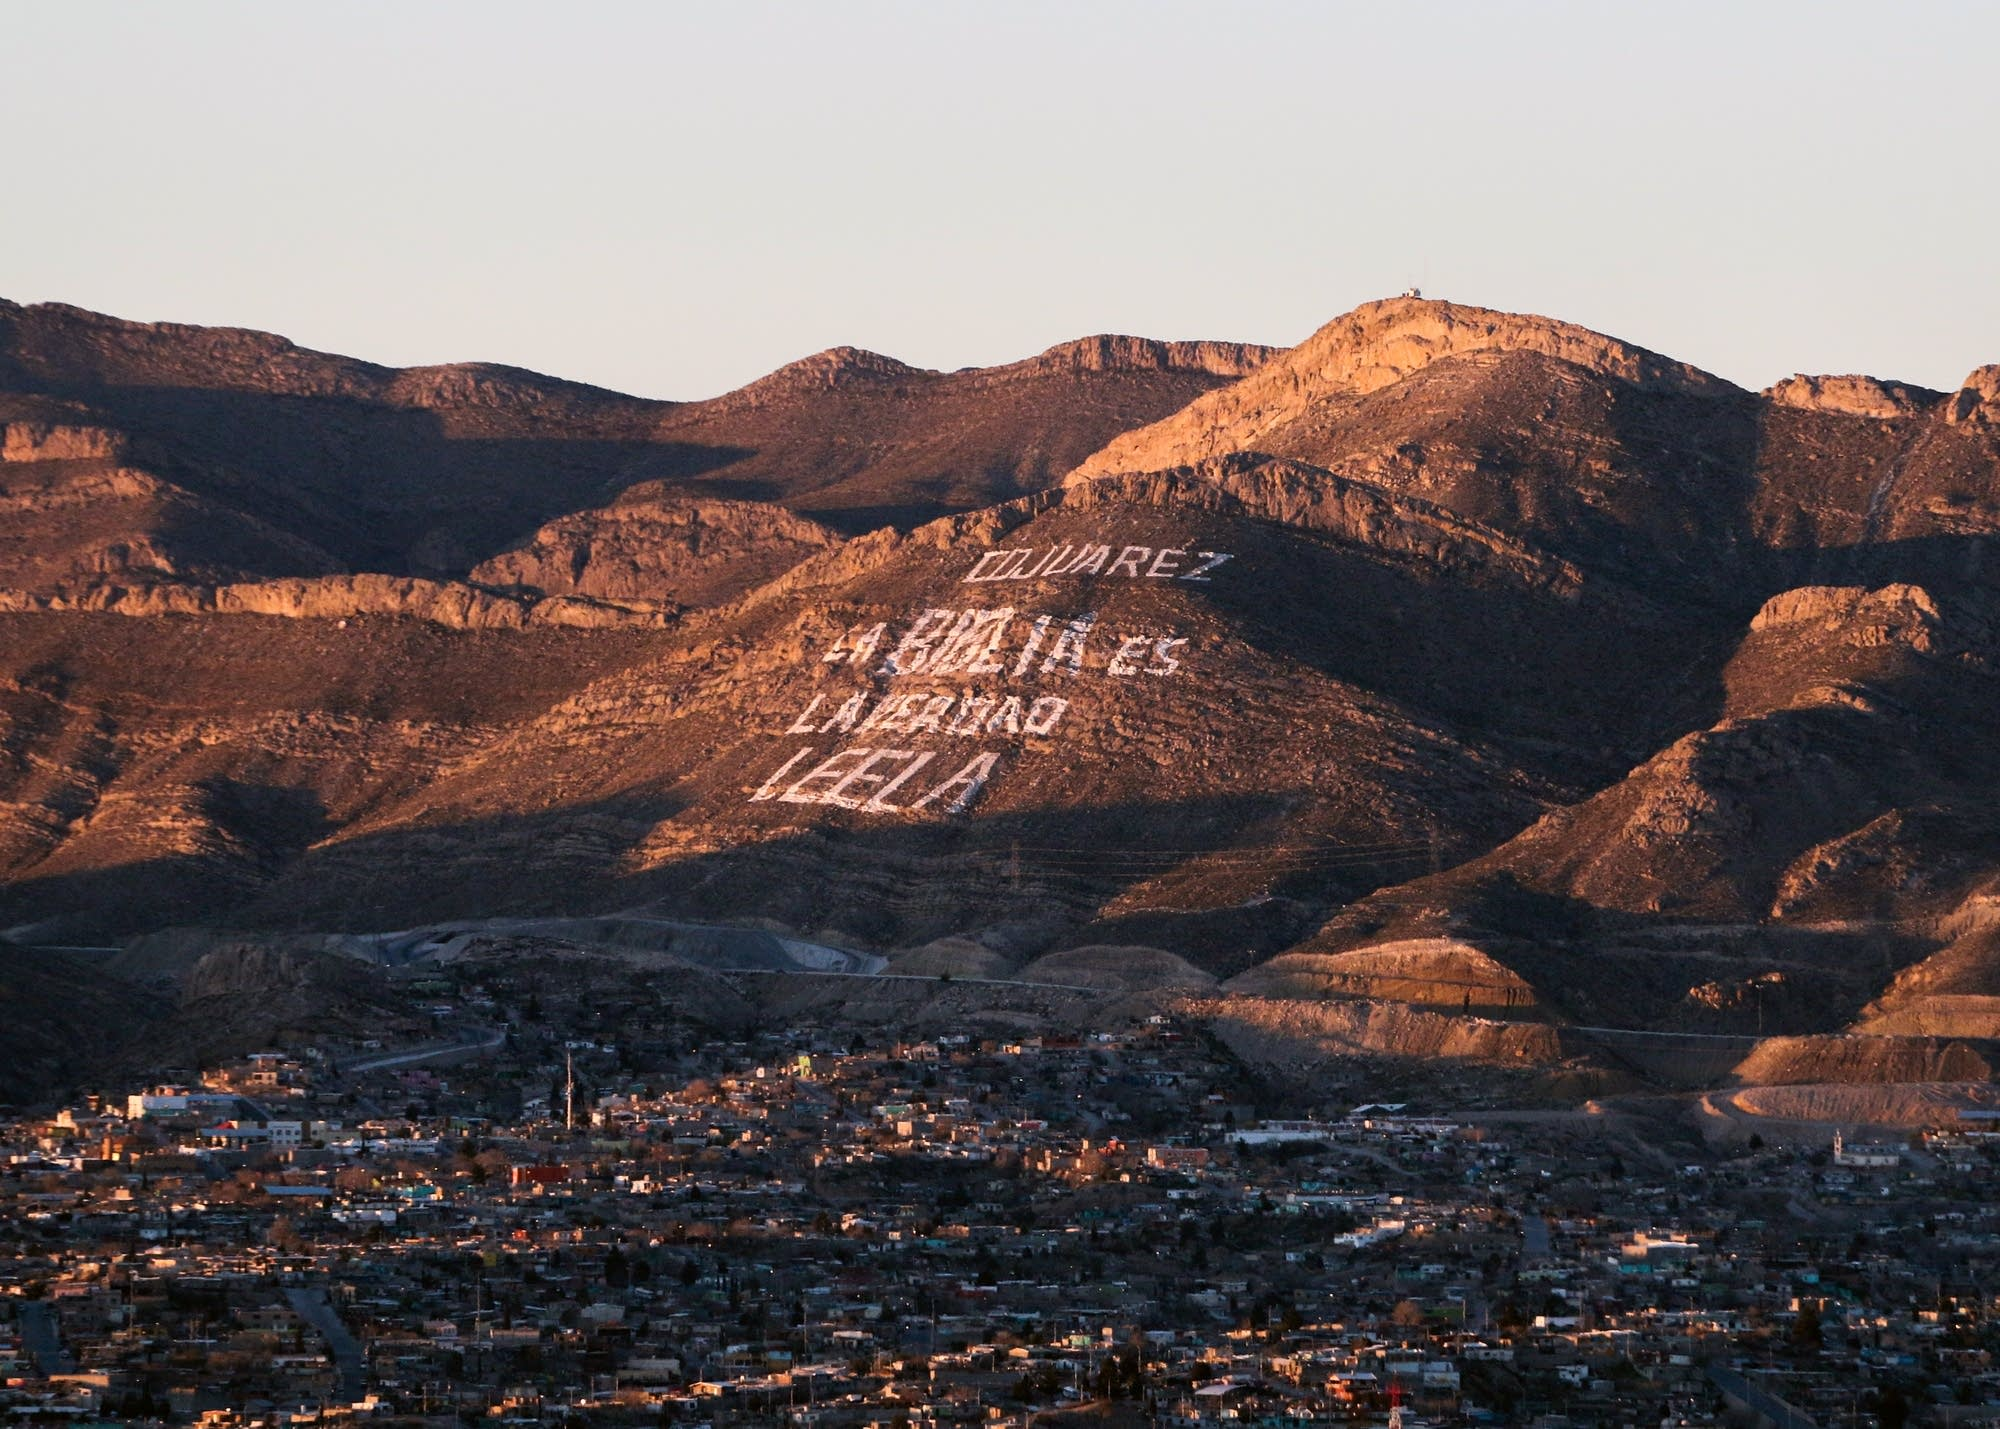 Message painted on a mountainside overlooking Ciudad Juarez, Mexico.